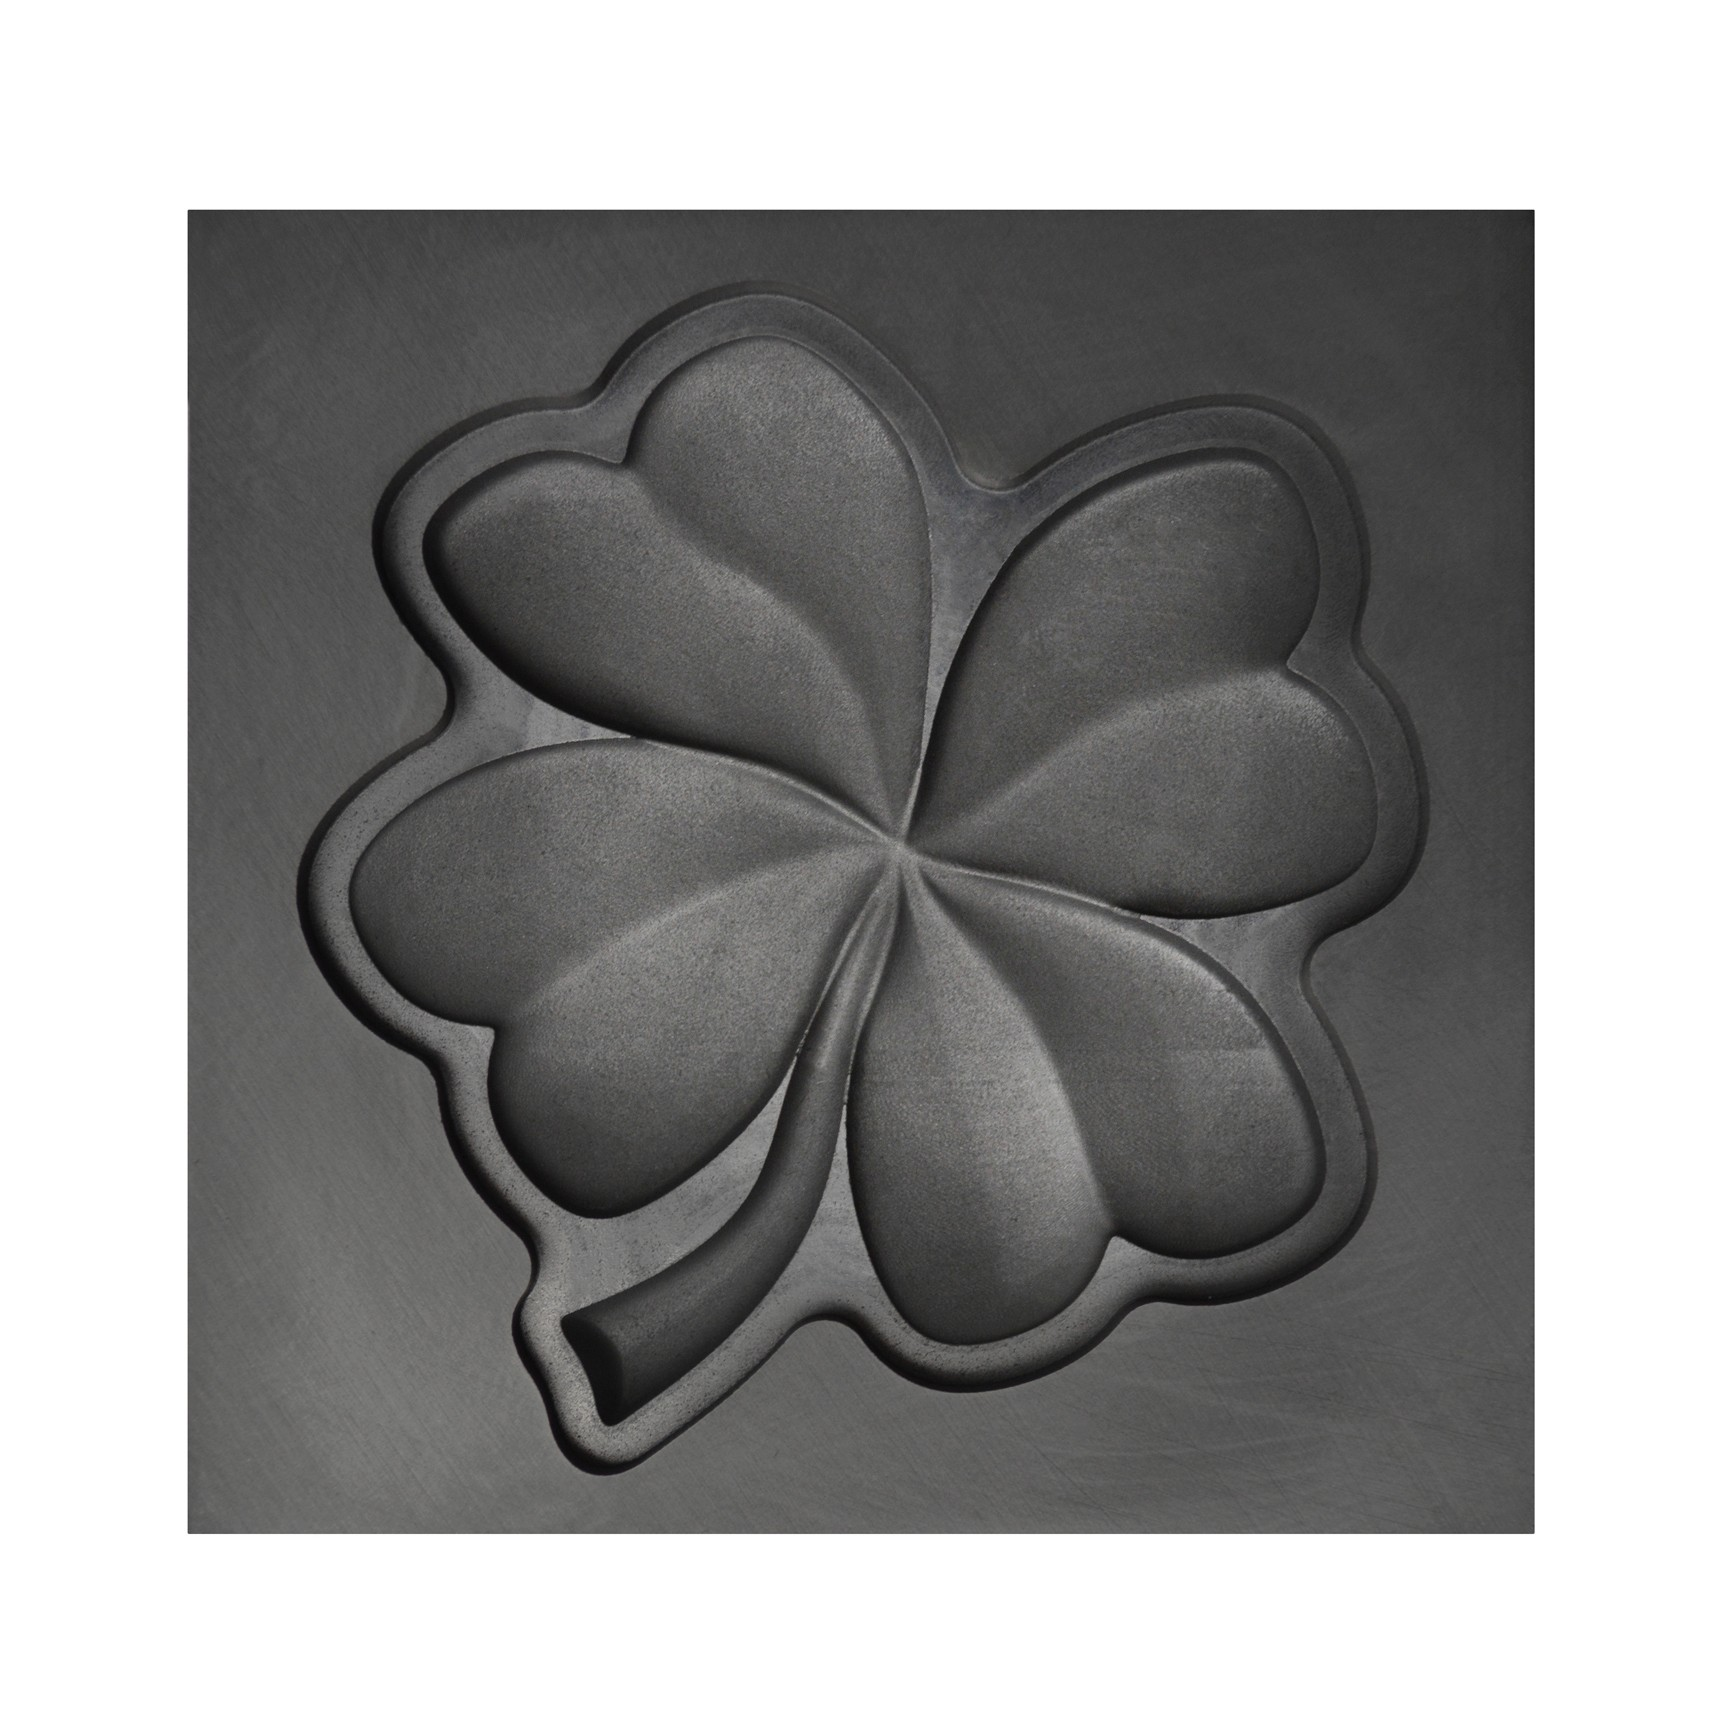 large four leaf clover 3d graphite ingot mold 3dmld 0039 pmc